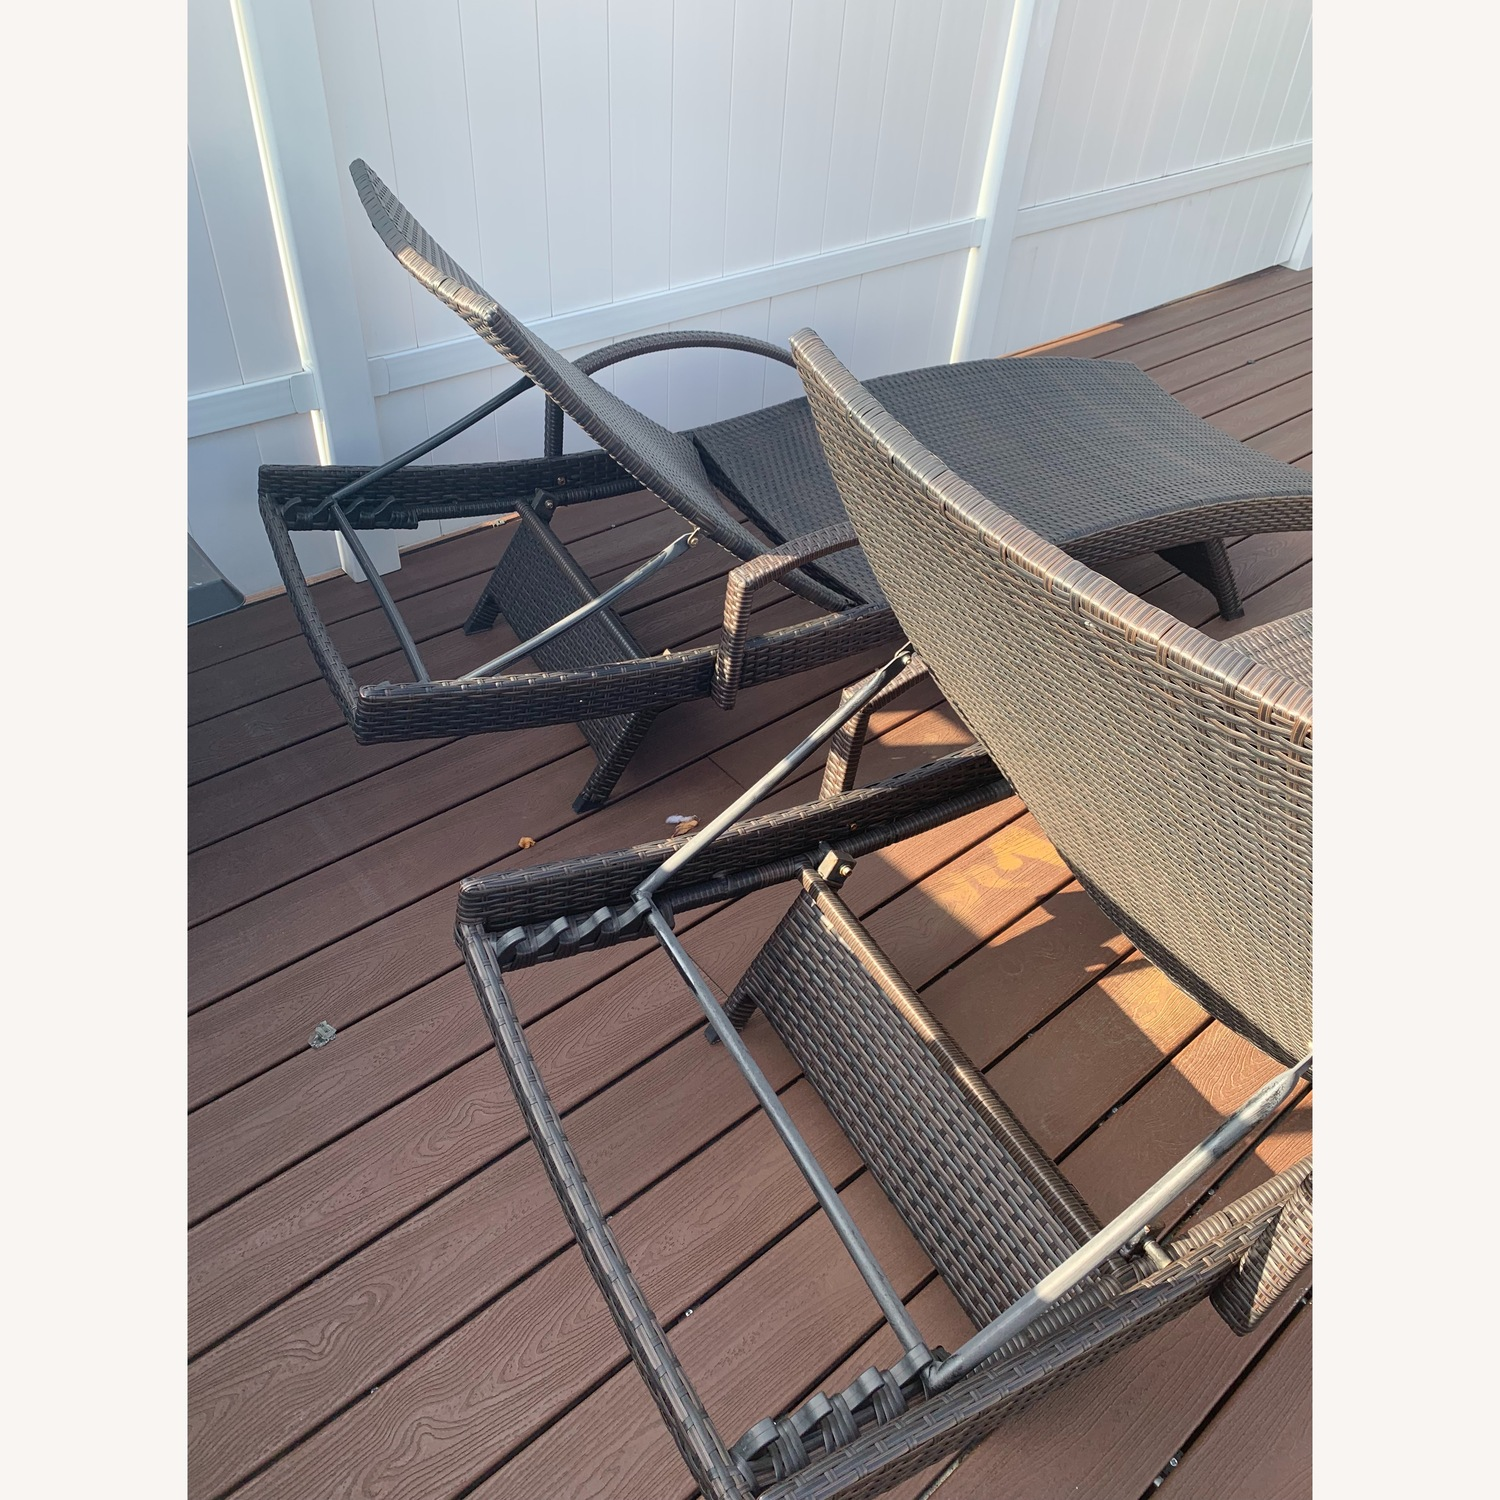 Rebello Outdoor Reclining Chaise Loungers - image-5